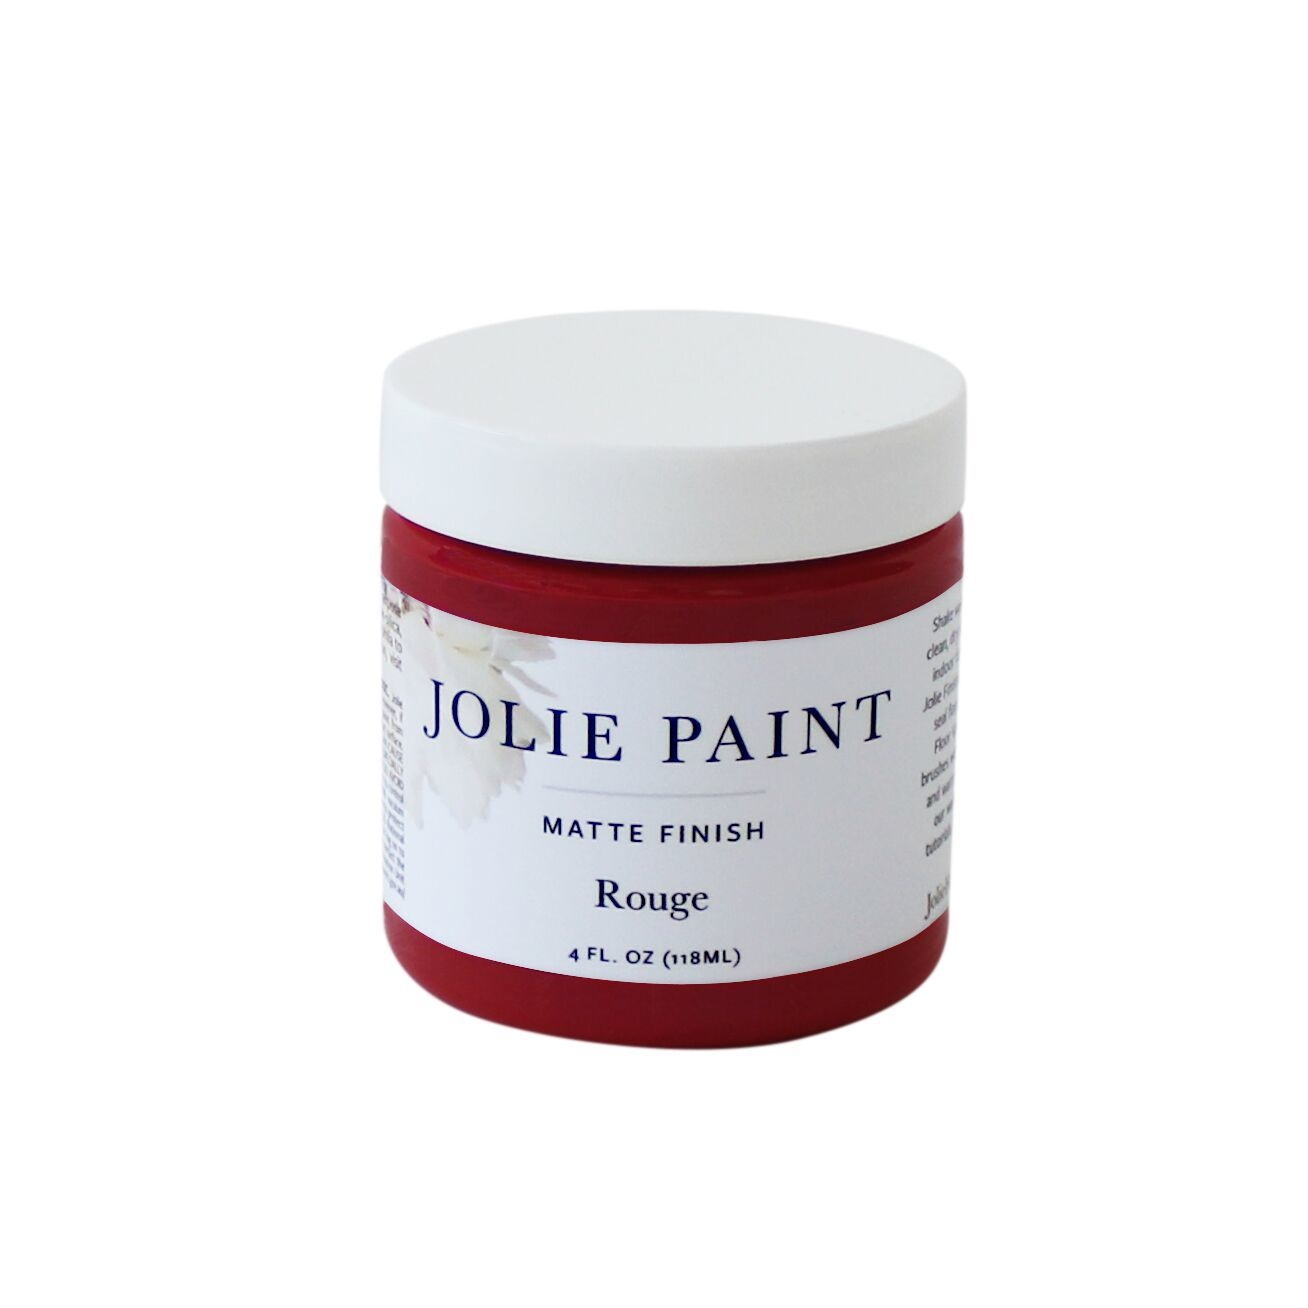 Jolie Home Rouge Matte Finish Paint